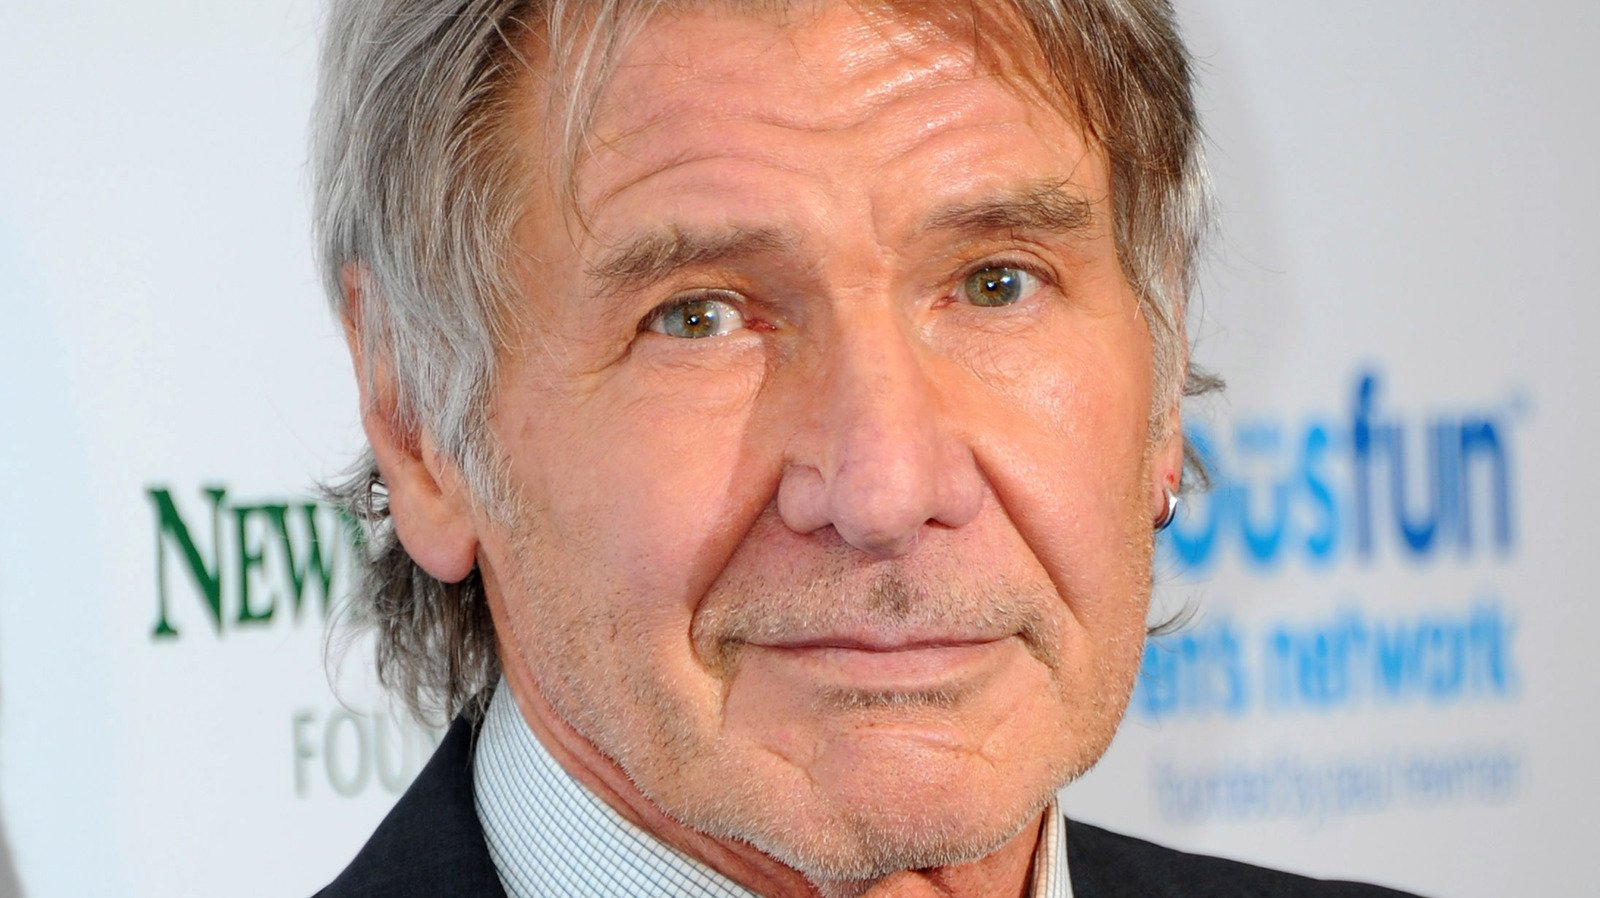 Twitter Can't Stop Making Fun Of Harrison Ford. Here's Why